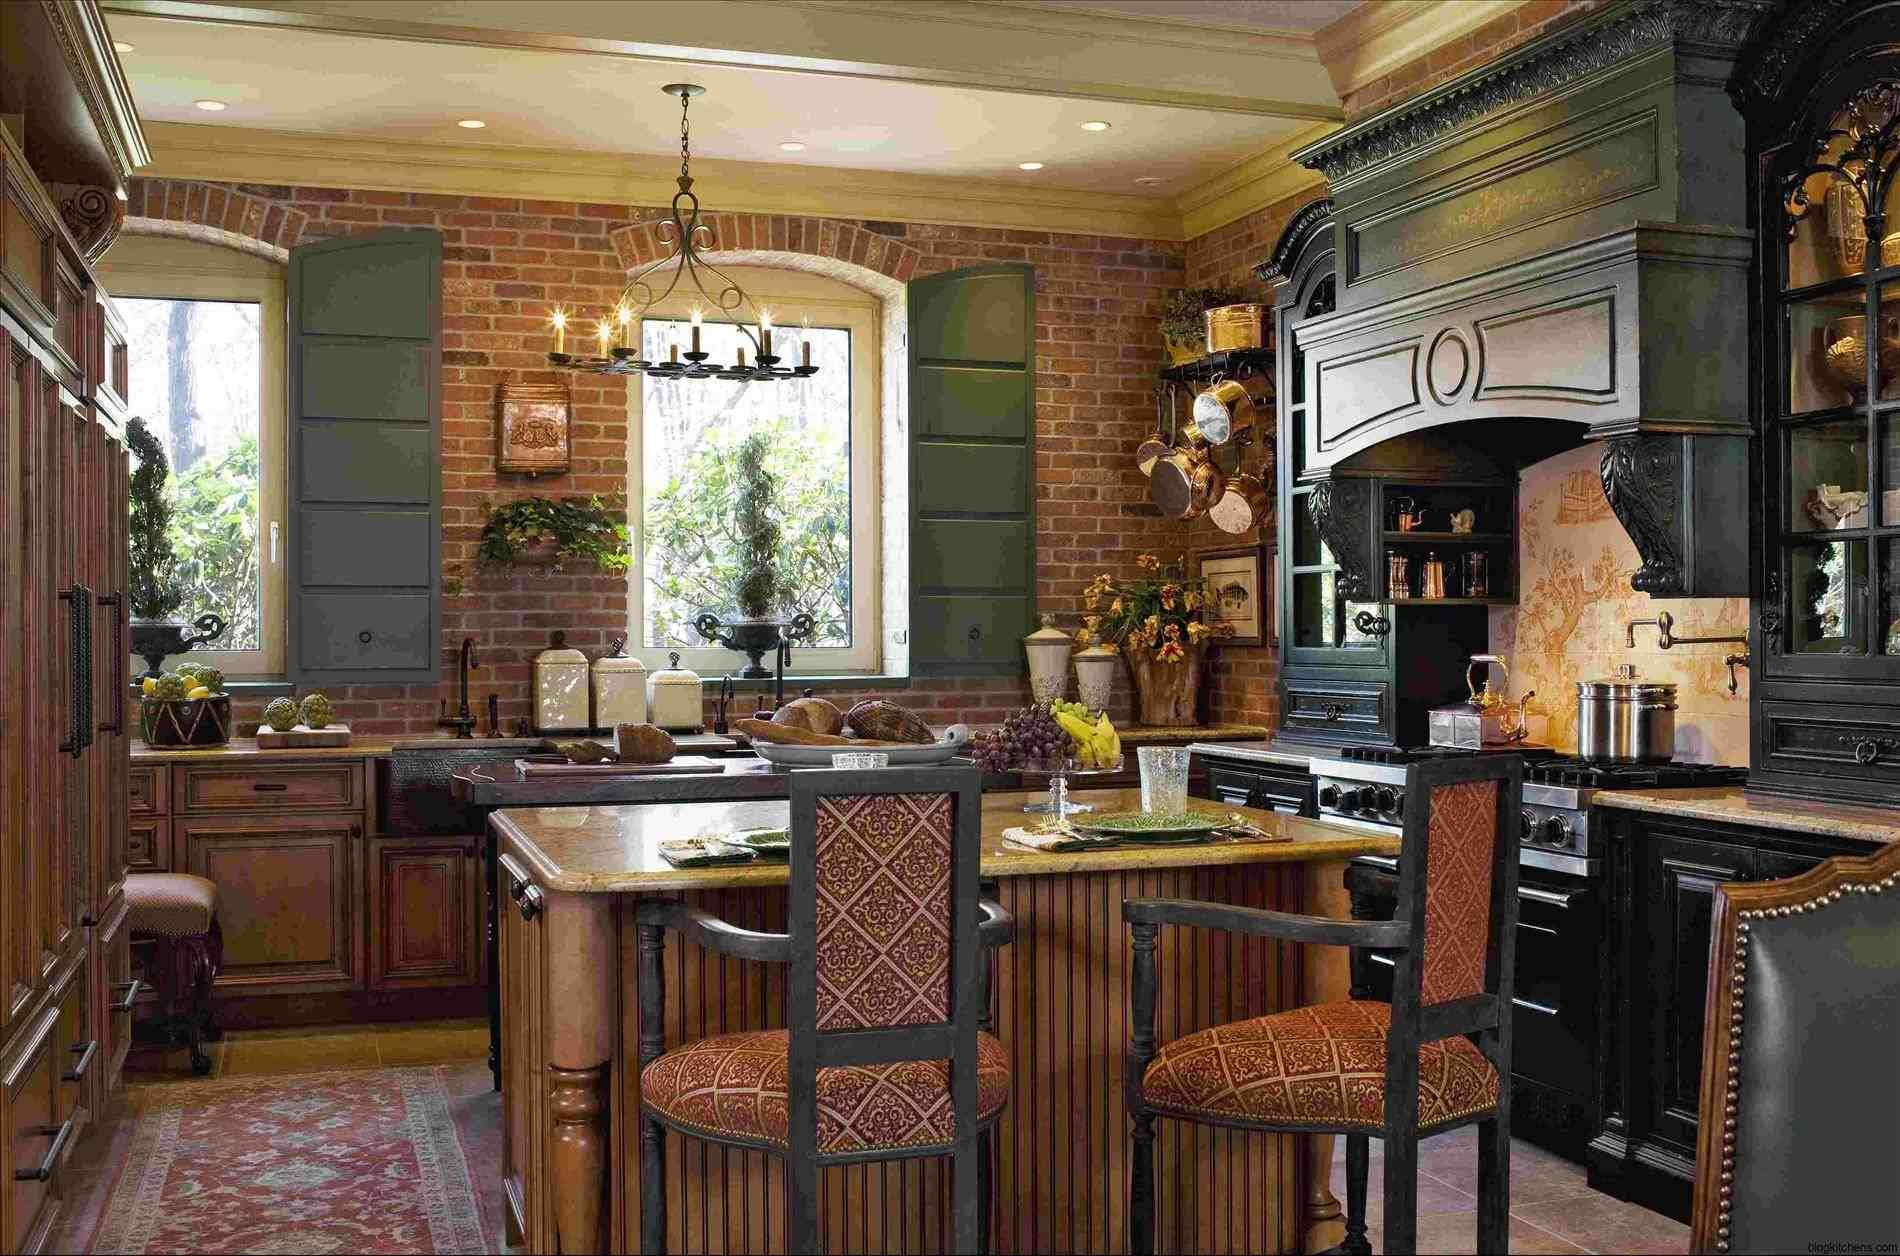 Country Kitchen Designs Photo Gallery French Country Kitchen Designs Photo Gallery Houses Country